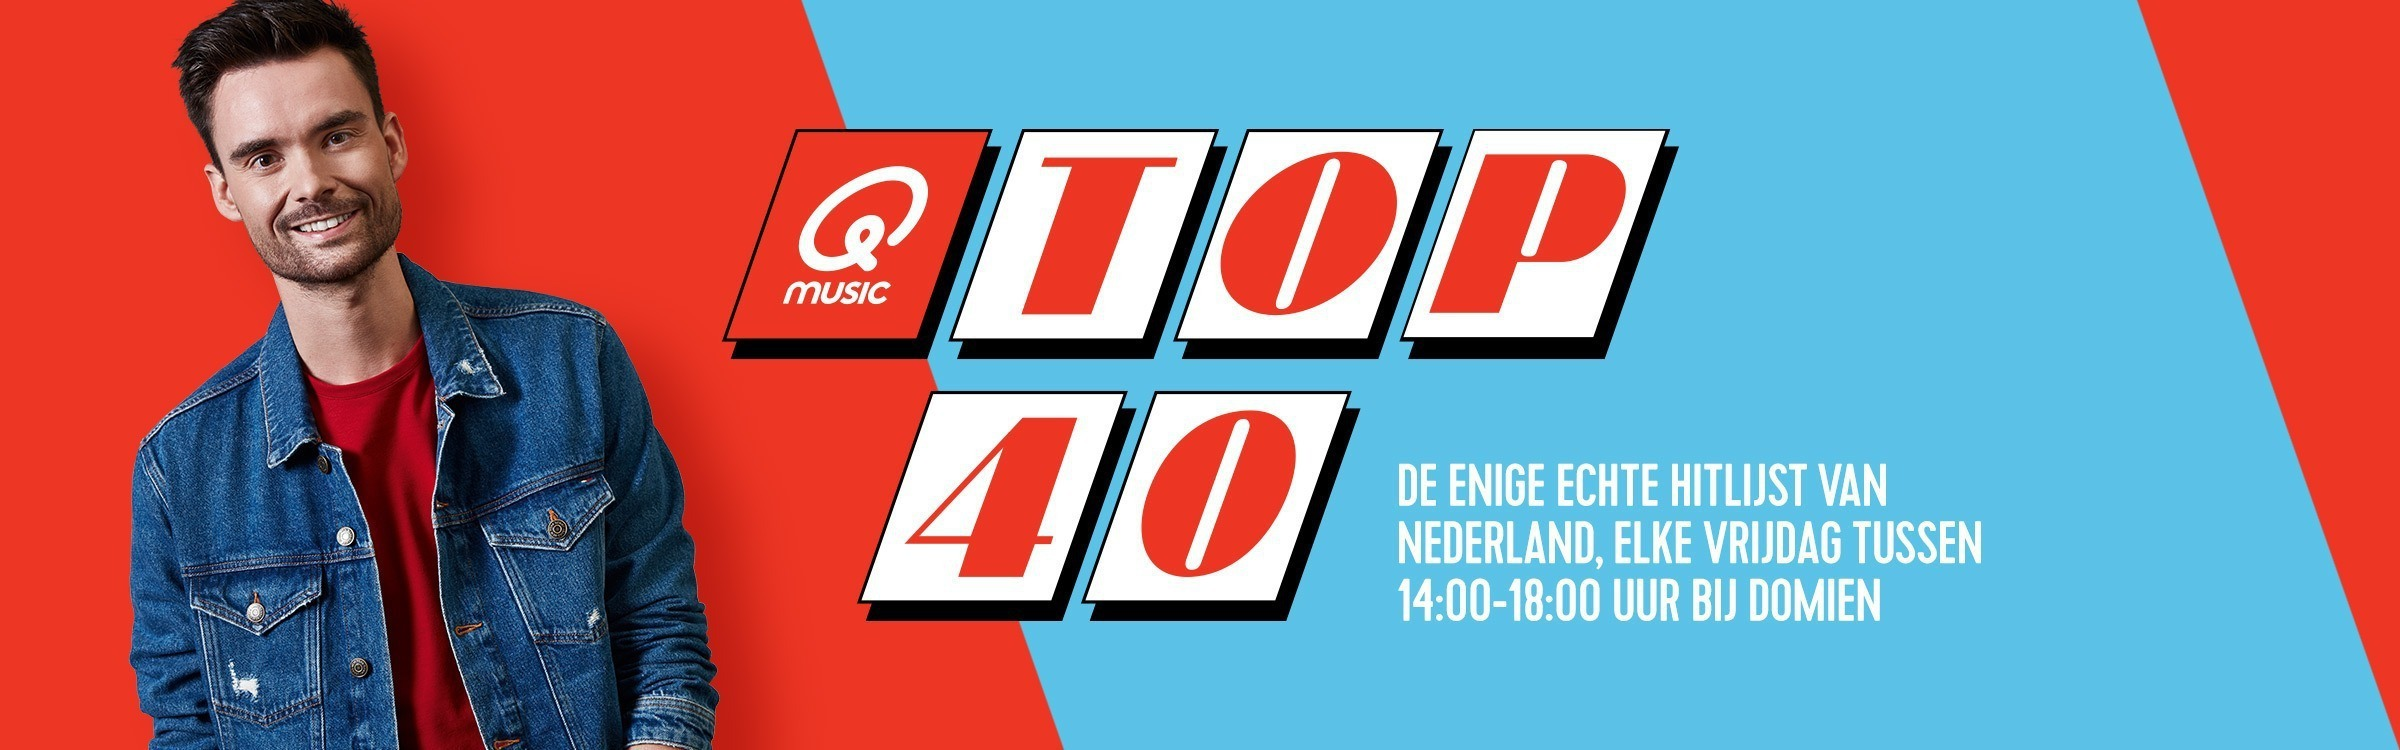 Qmusic actionheader qtop40 1